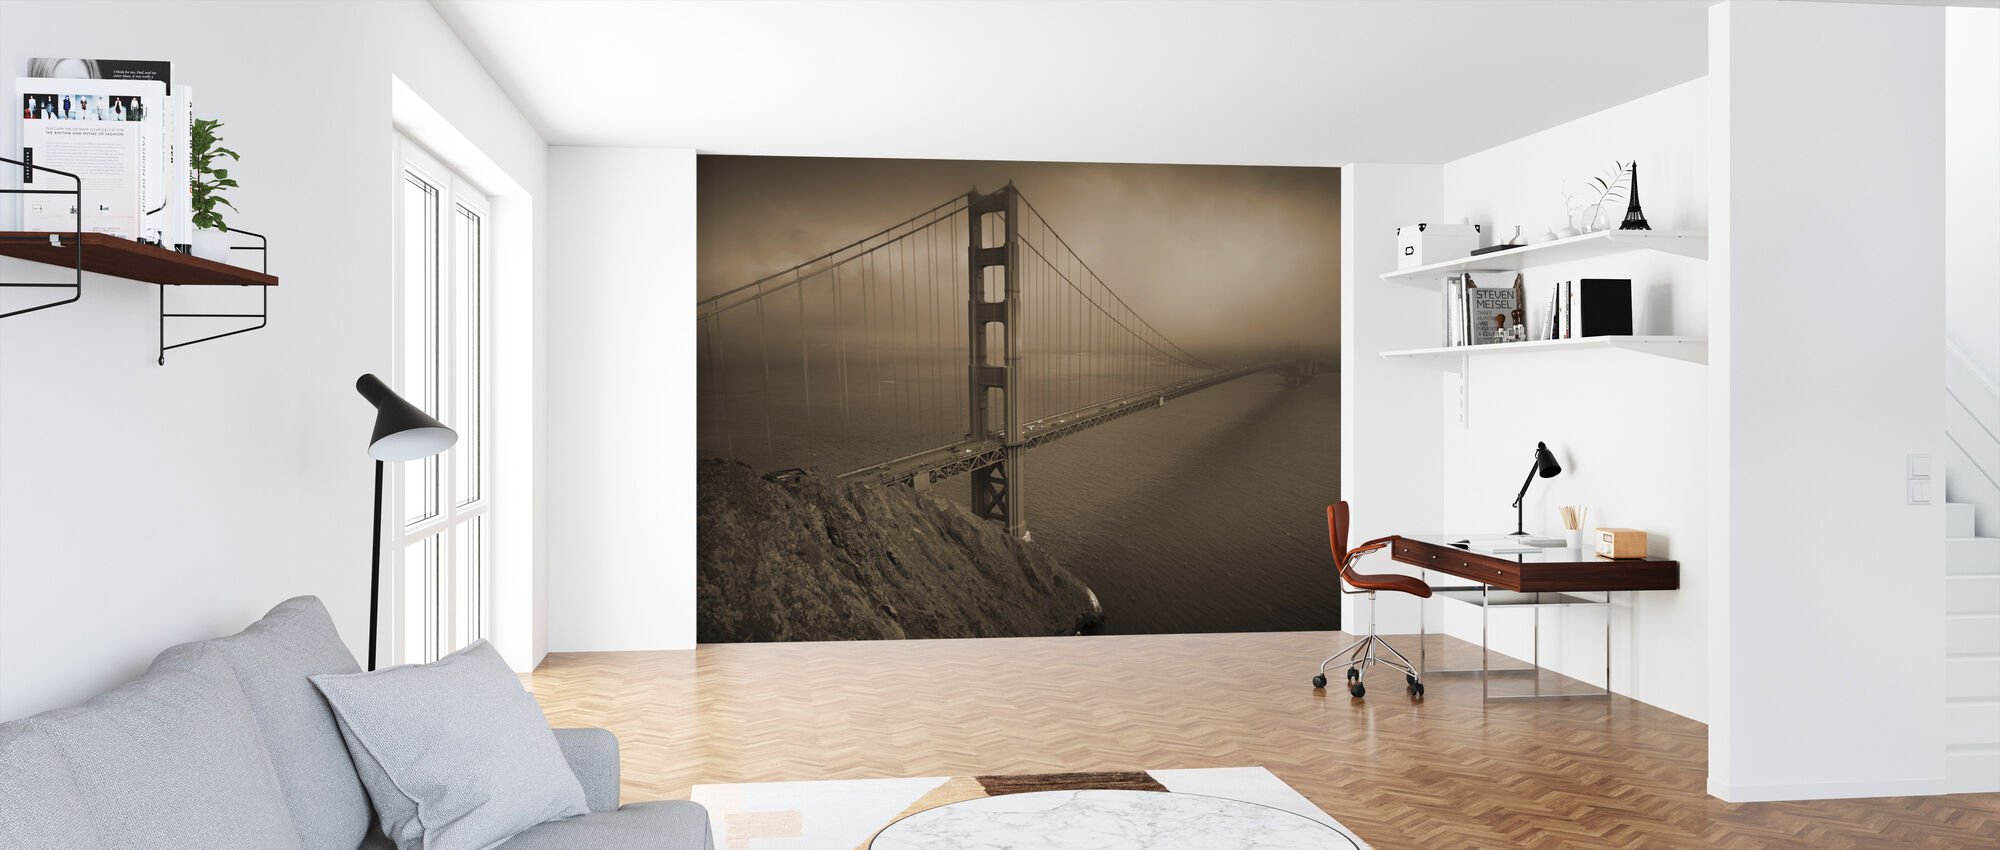 Golden Gate - Sepia - Wallpaper - Office